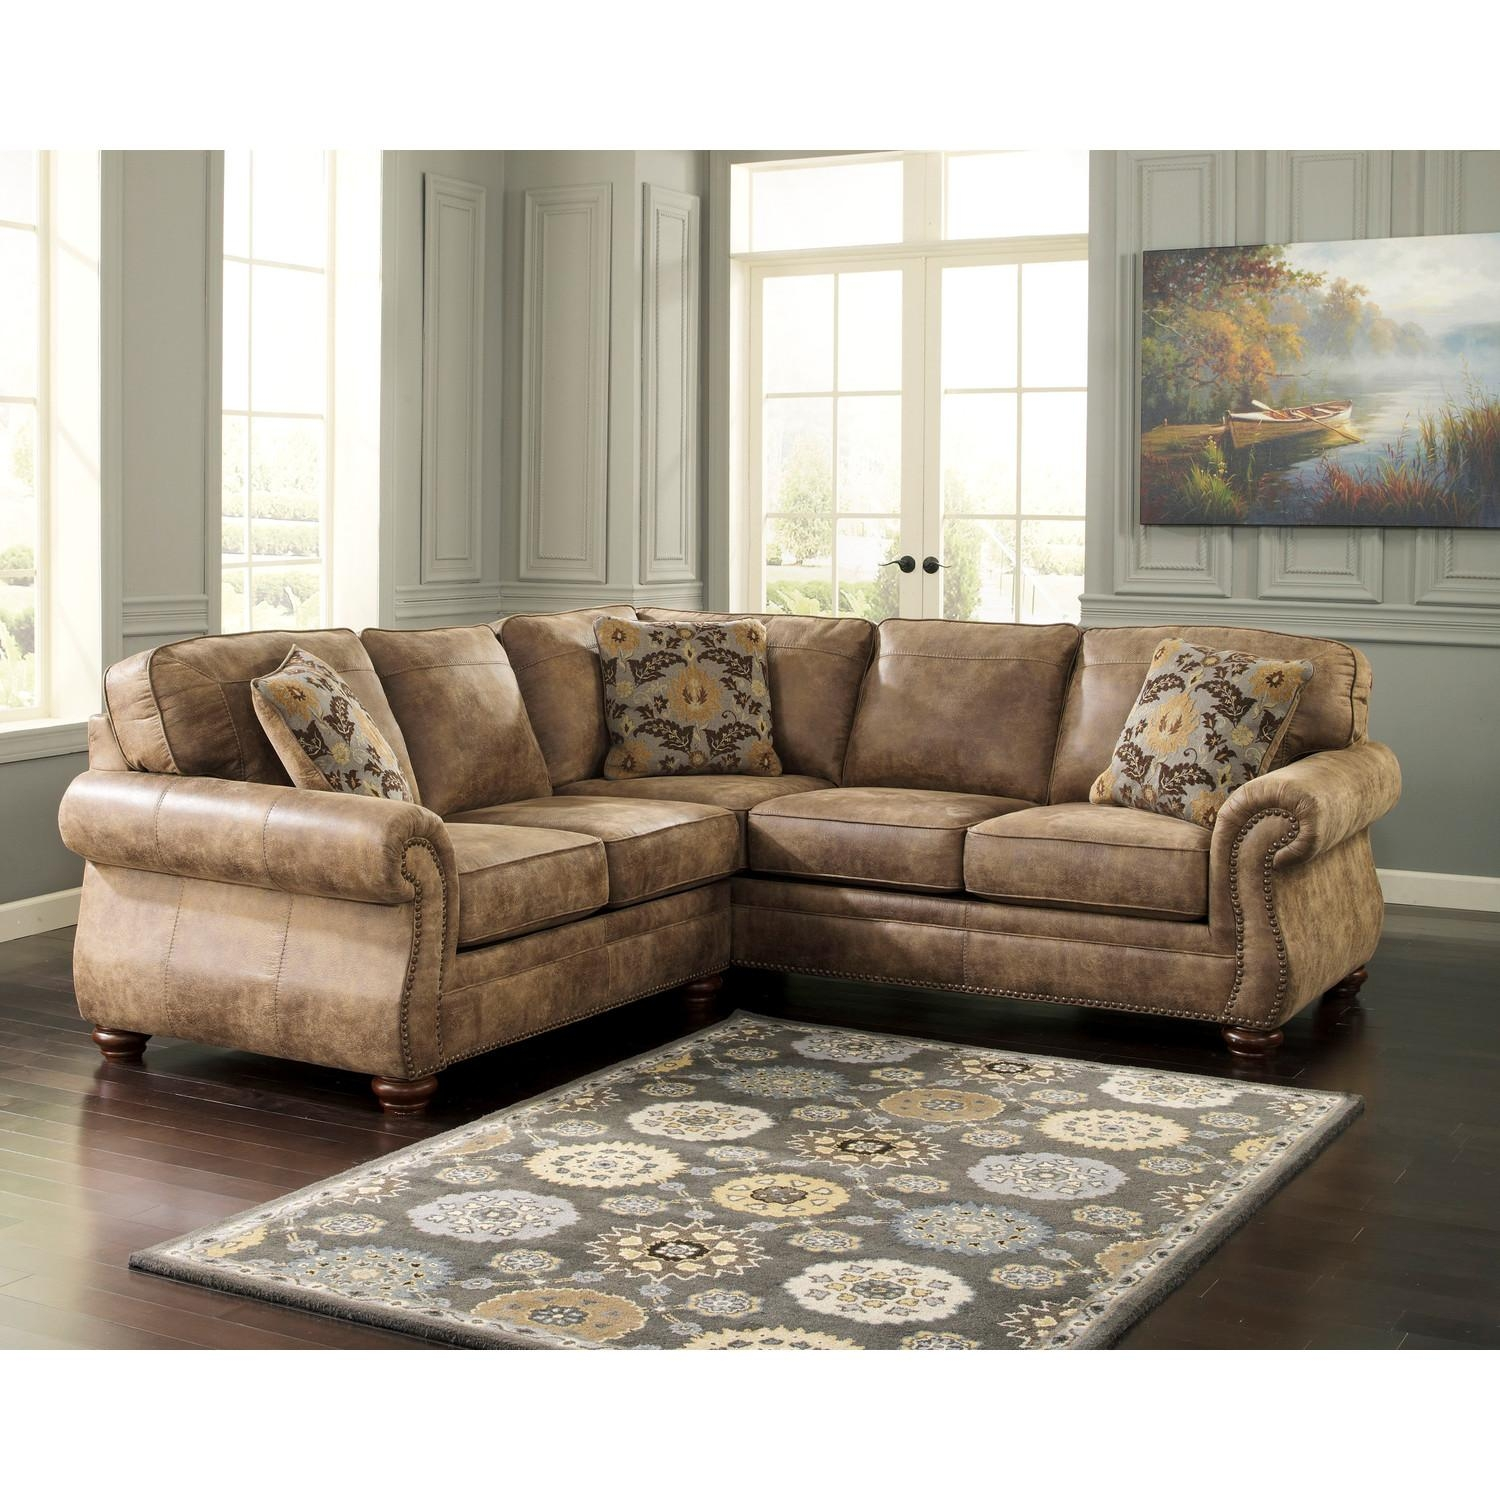 Small Space Sofas Top 10 Contemporary Sofas For Small Spaces With Regard To Tiny Sofas (View 11 of 20)